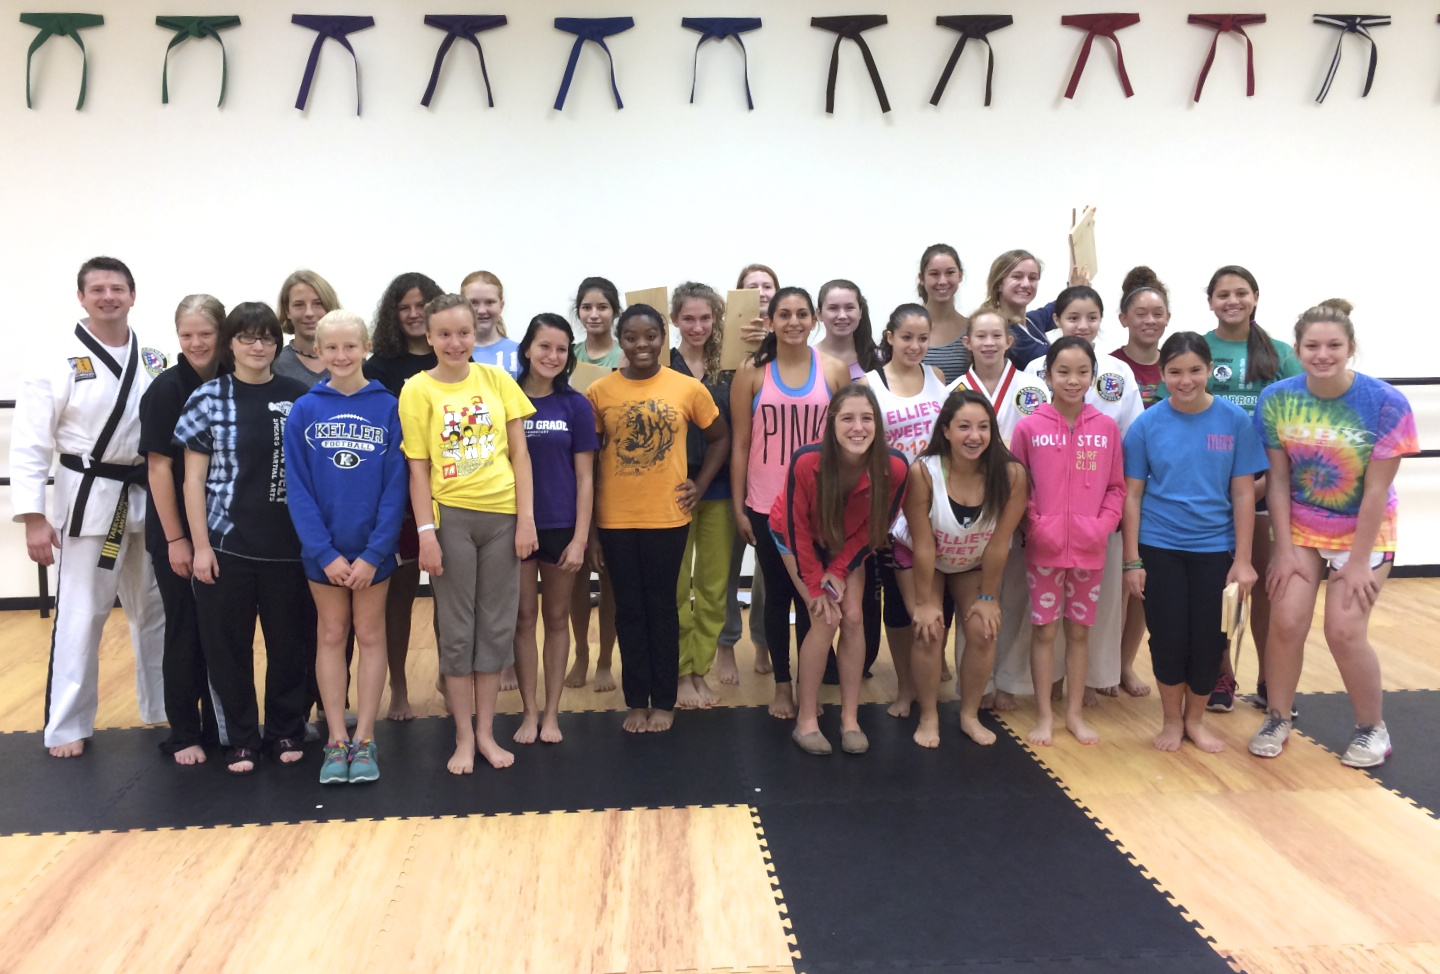 26 local girls from Southlake, Colleyville, Grapevine and Keller learned a great deal about dealing with a dangerous situation.